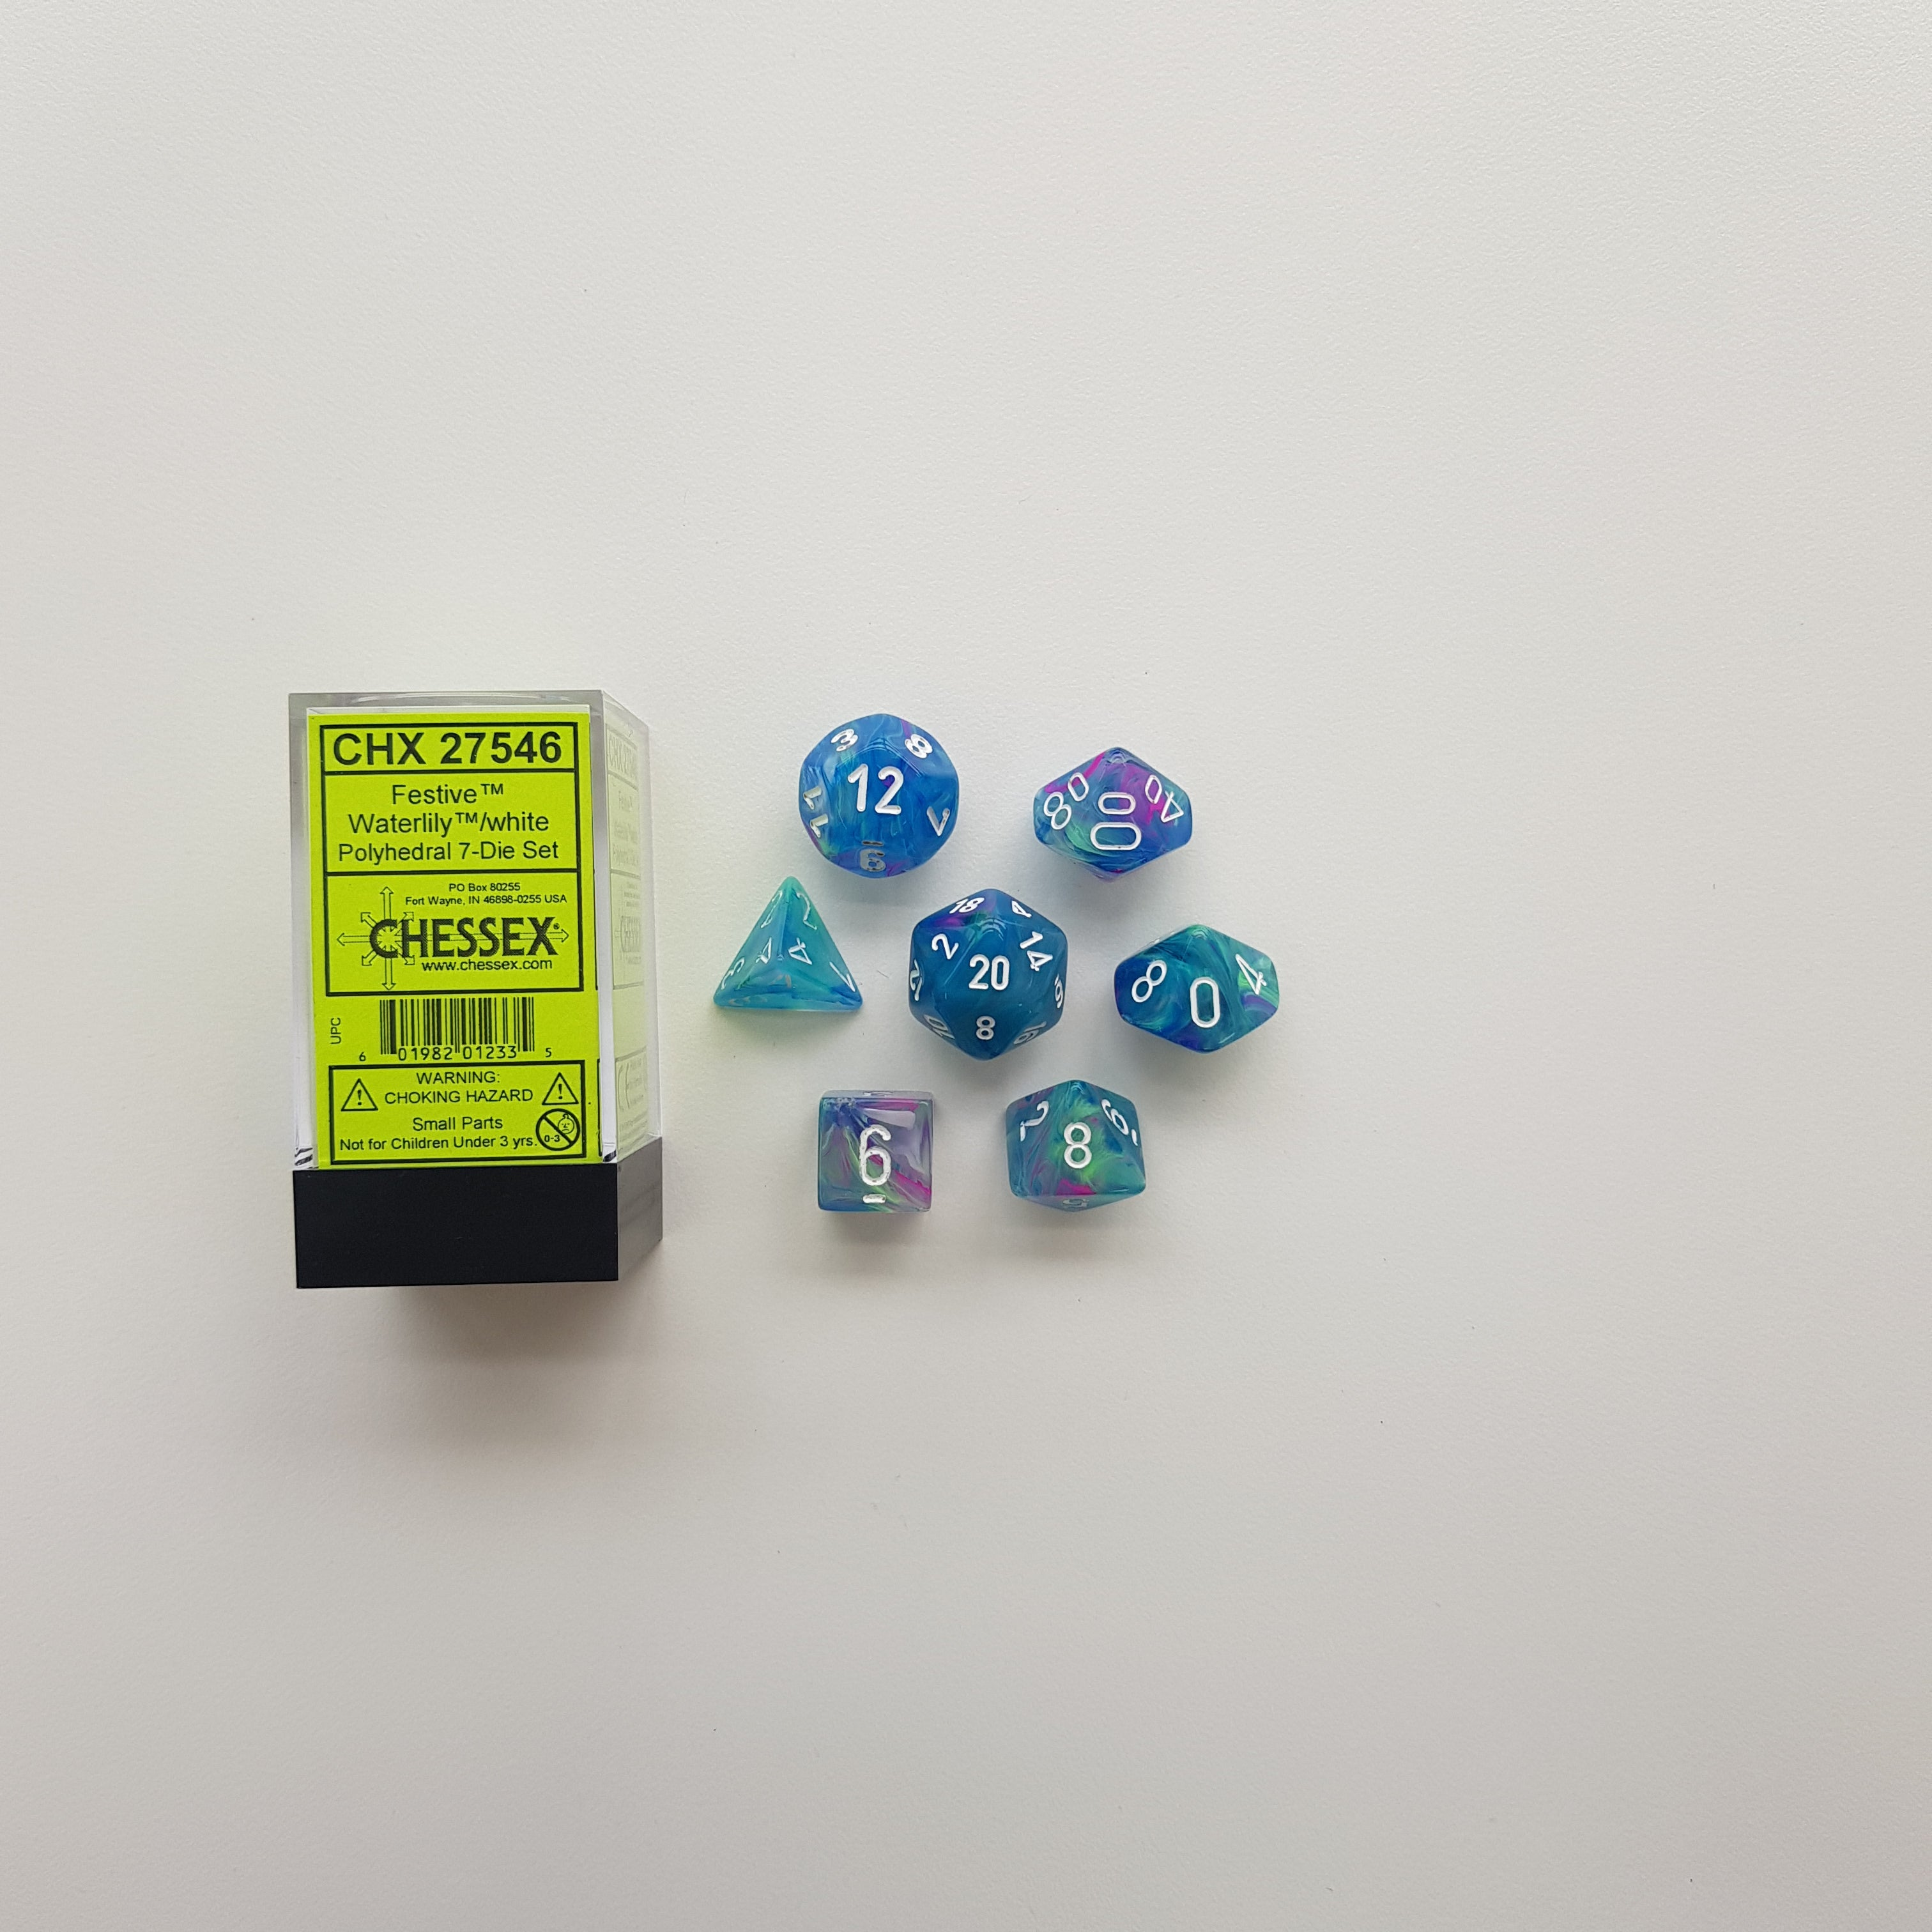 Chessex Waterlily w/White Festive Polyhedral Dice Set (CHX27546) | Sunny Pair'O'Dice